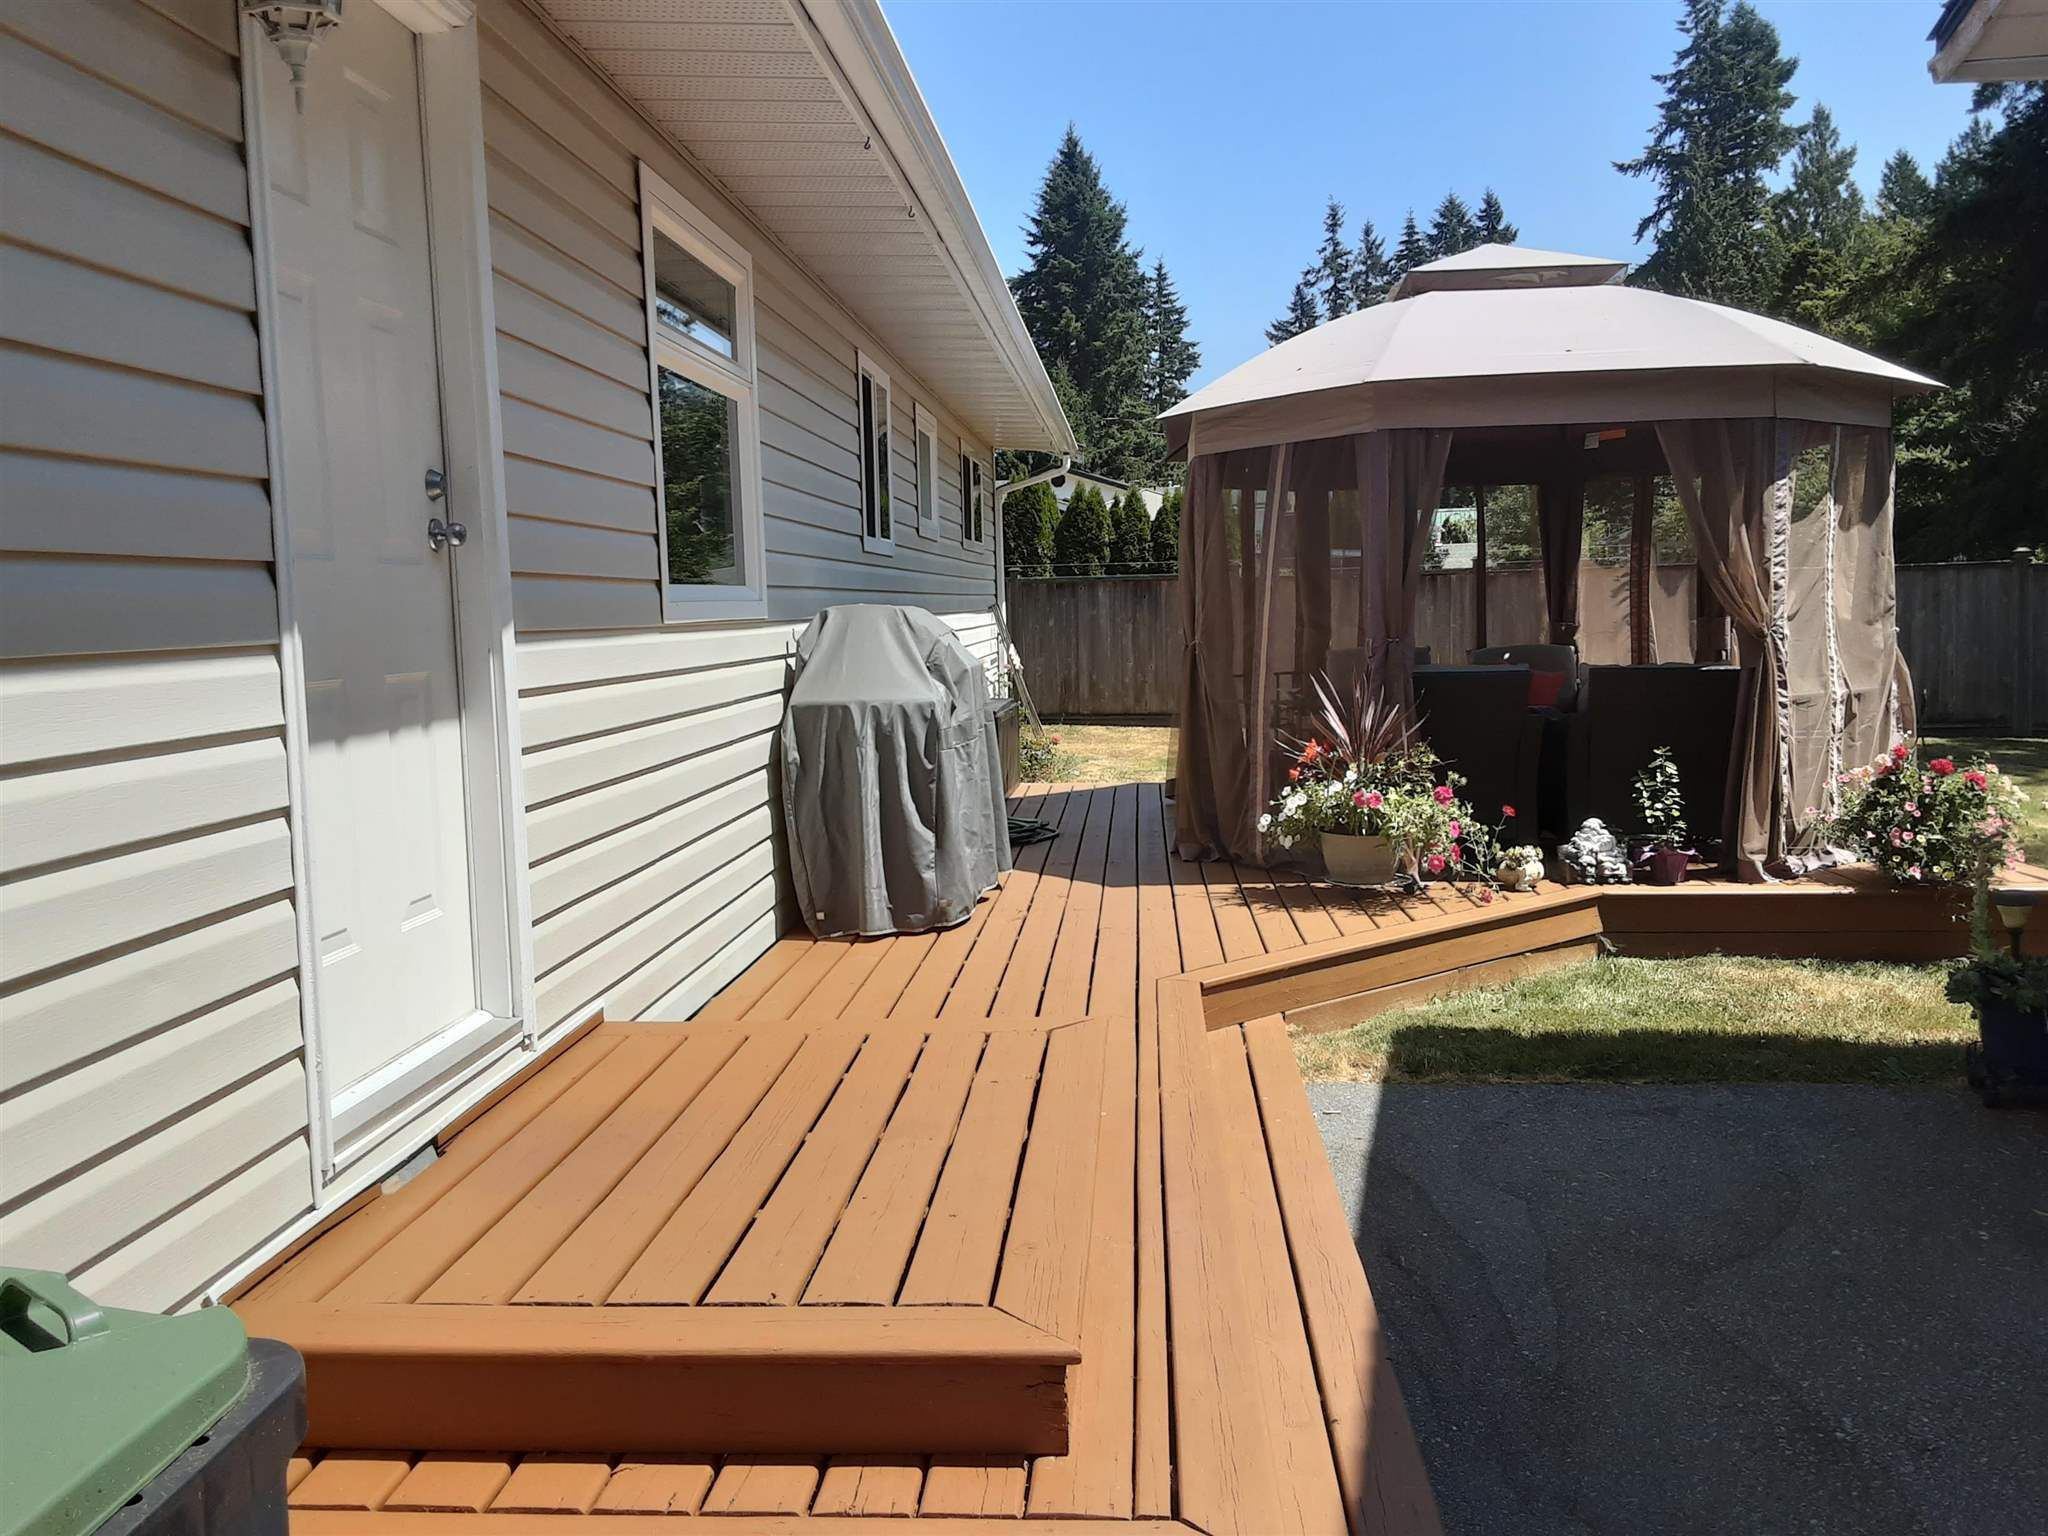 """Photo 17: Photos: 19740 40A Avenue in Langley: Brookswood Langley House for sale in """"BROOKSWOOD"""" : MLS®# R2602130"""